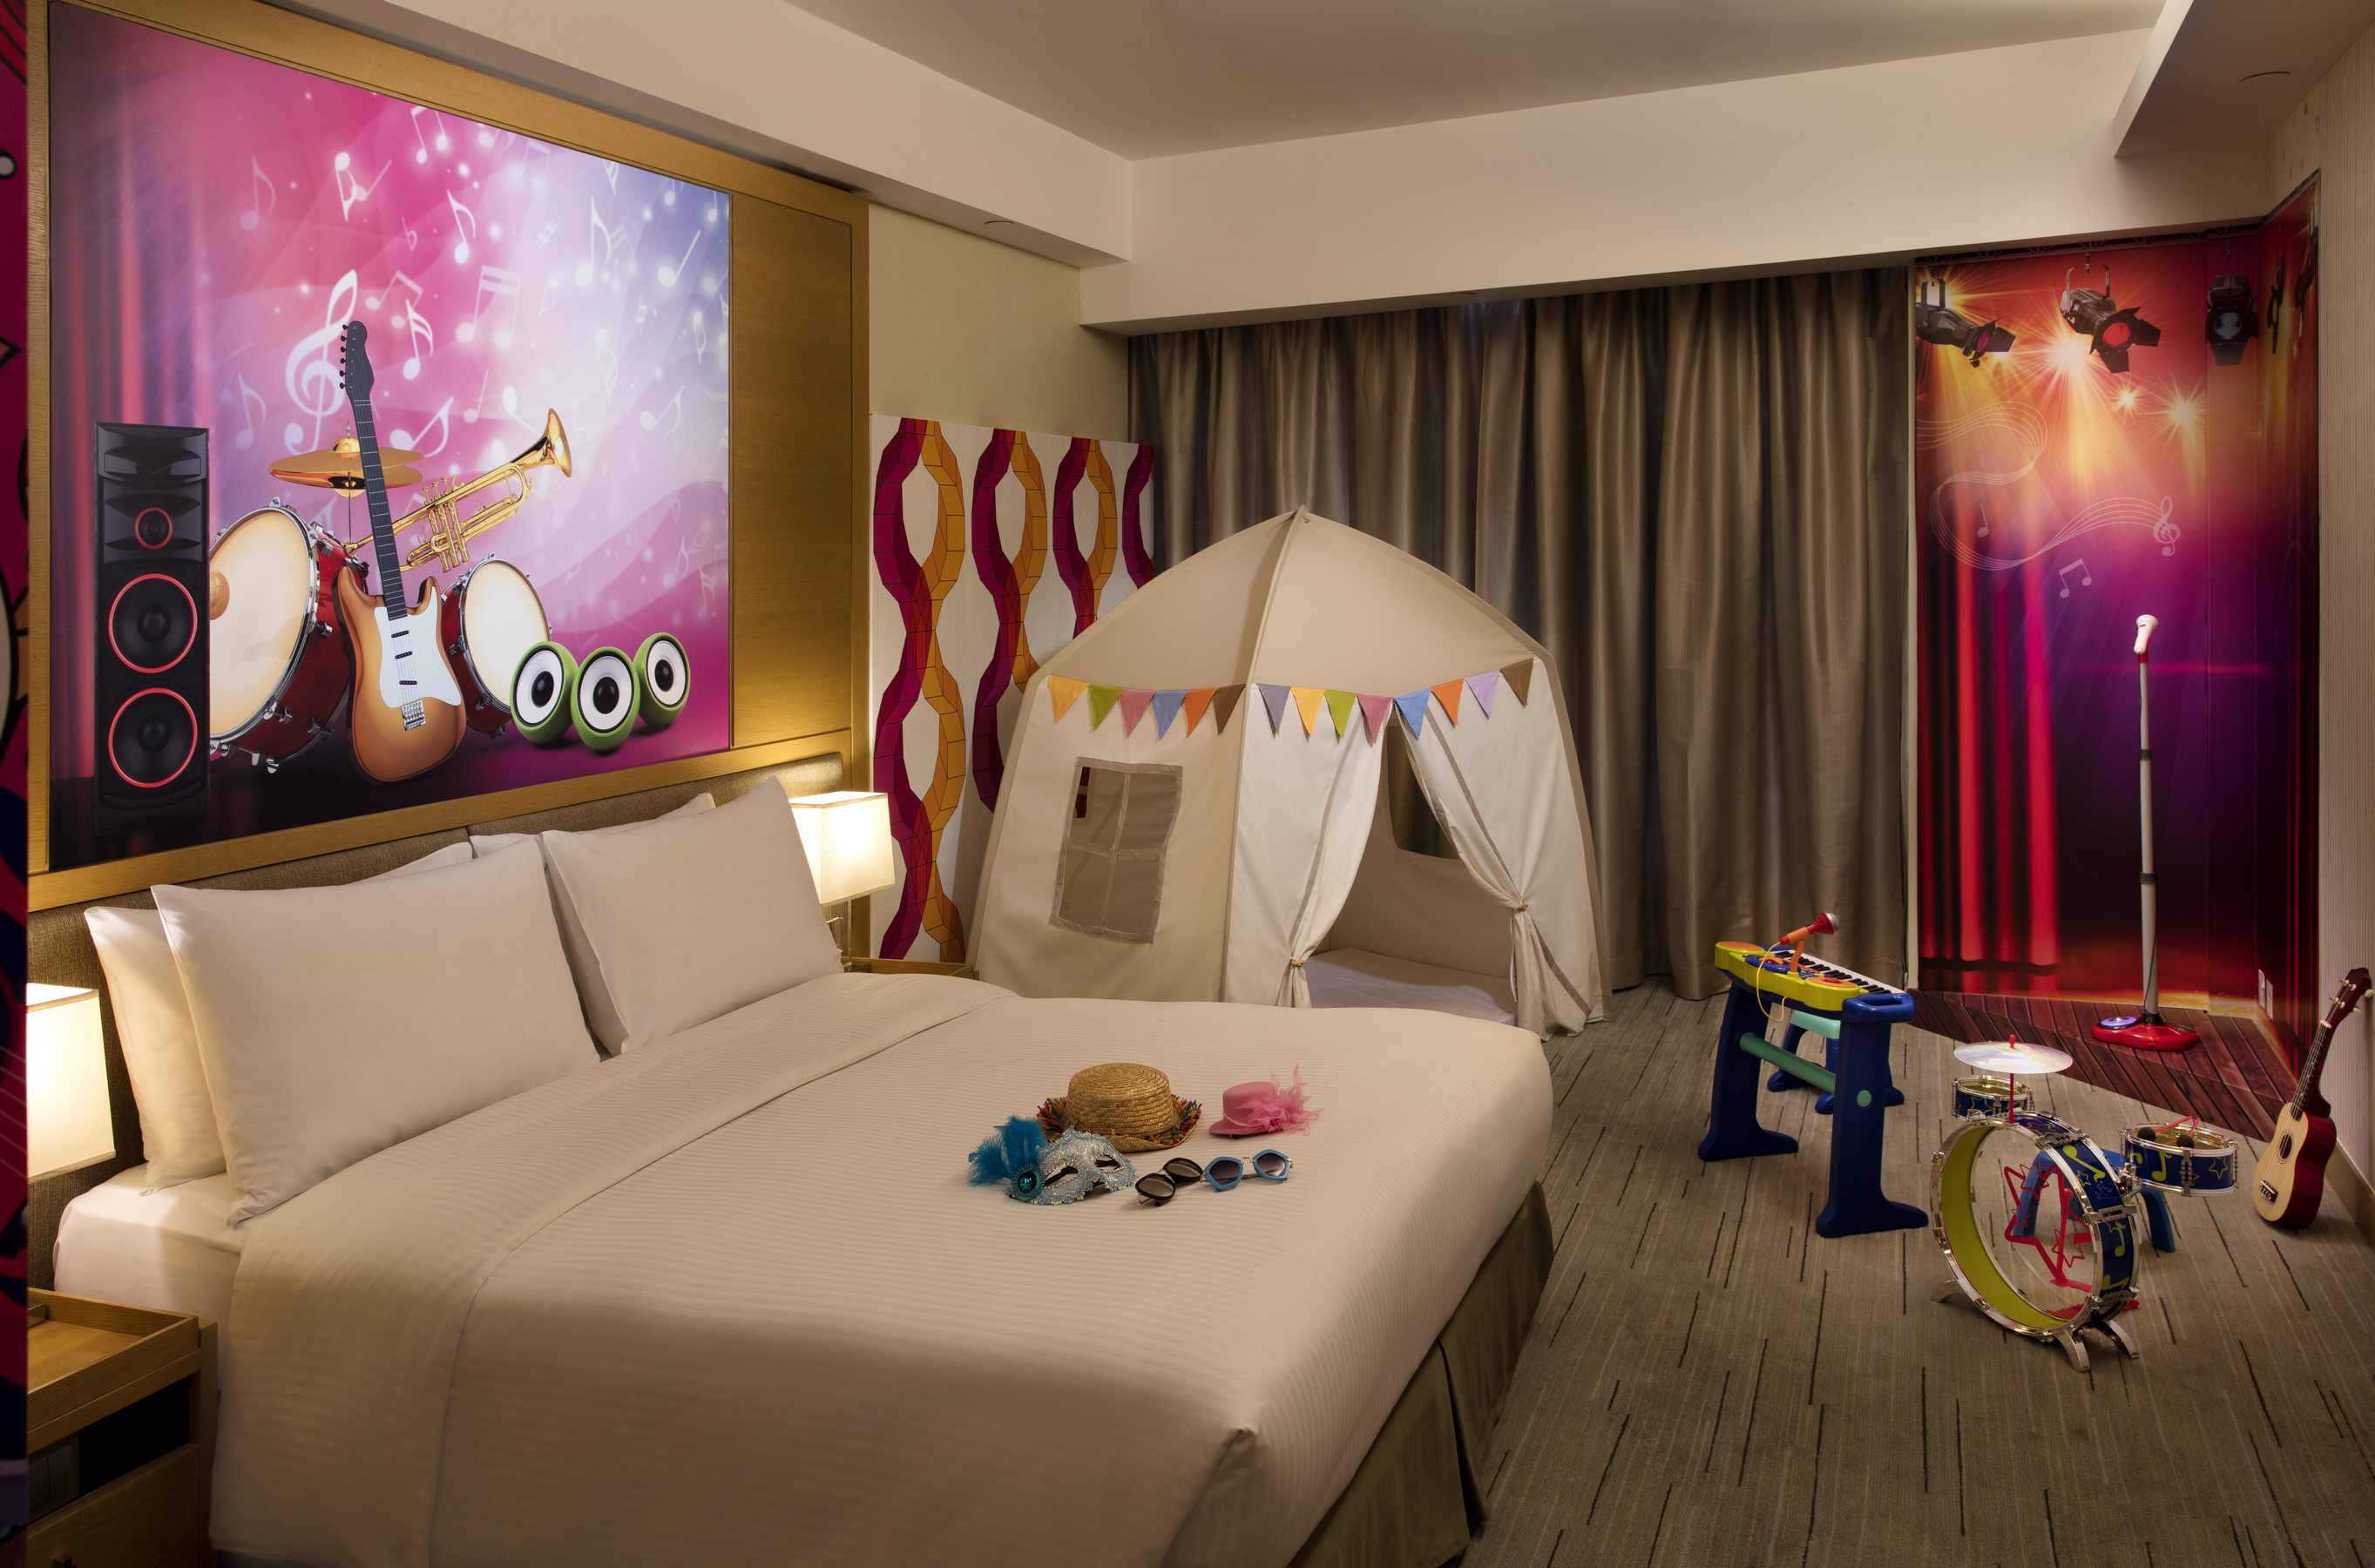 Vibe Music Themed Room